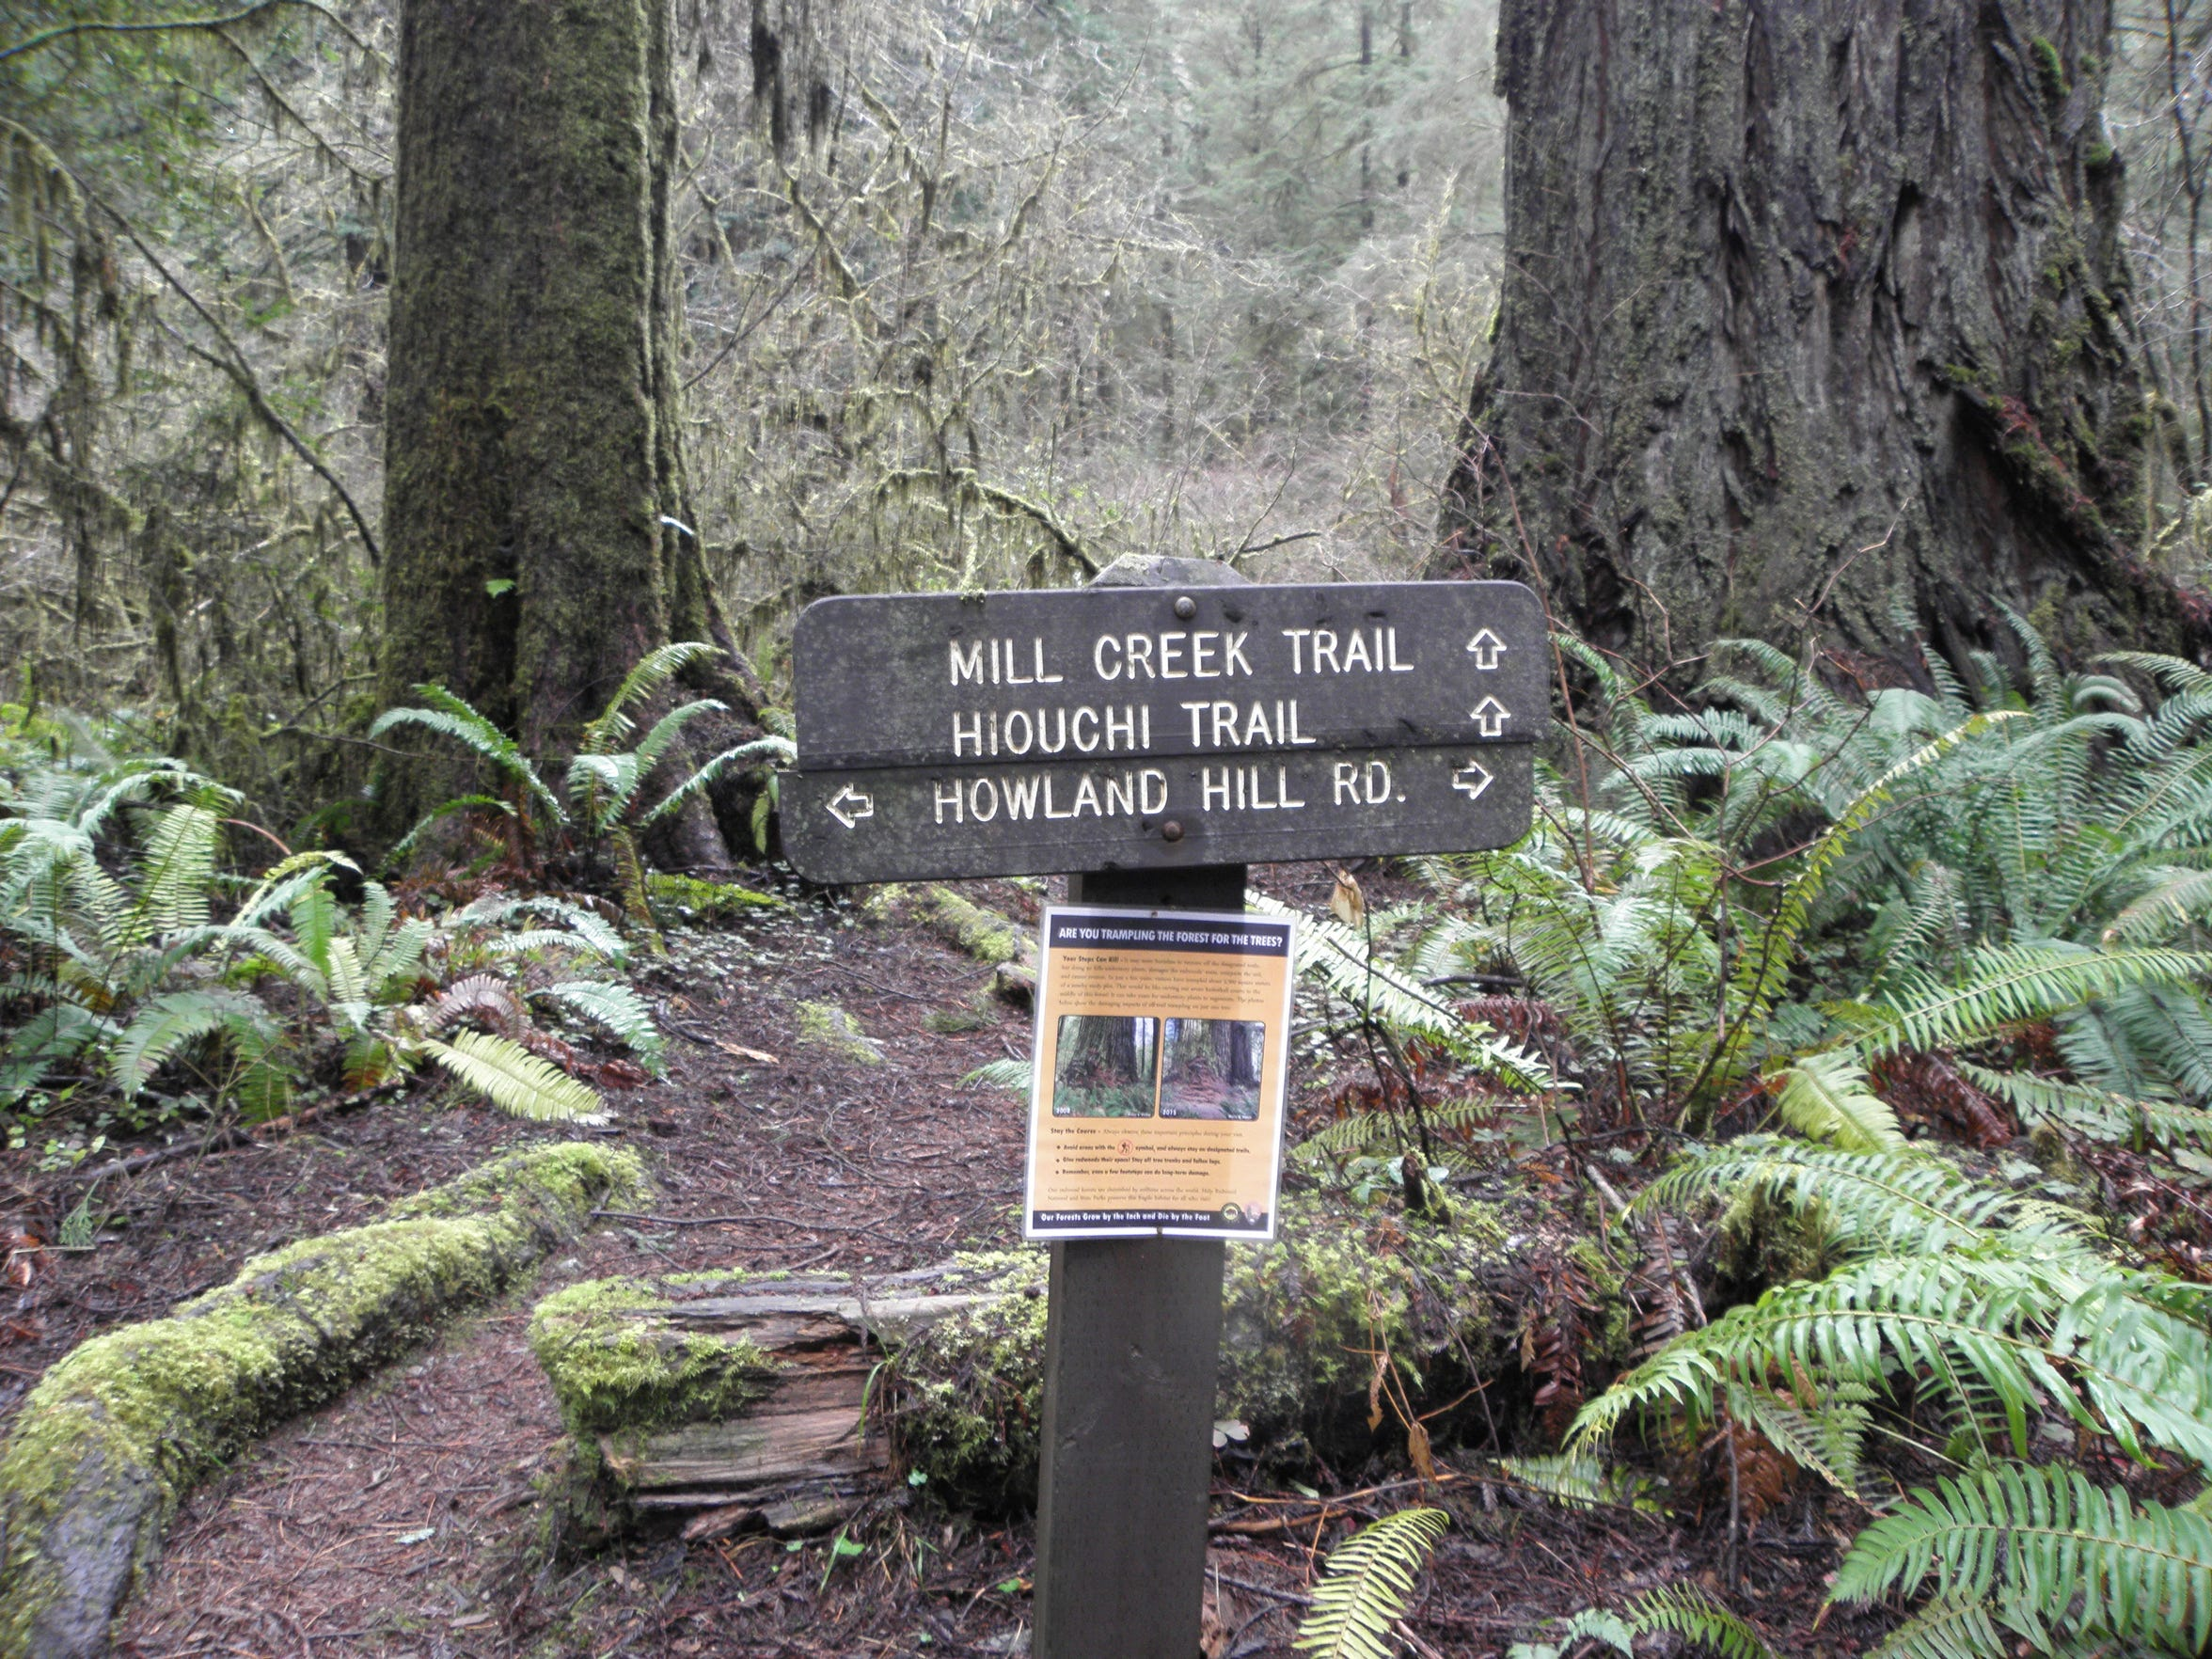 Signs placed last summer on Mill Creek Trail are designed to keep hikers on established trails and not go searching for the Grove of Titans.